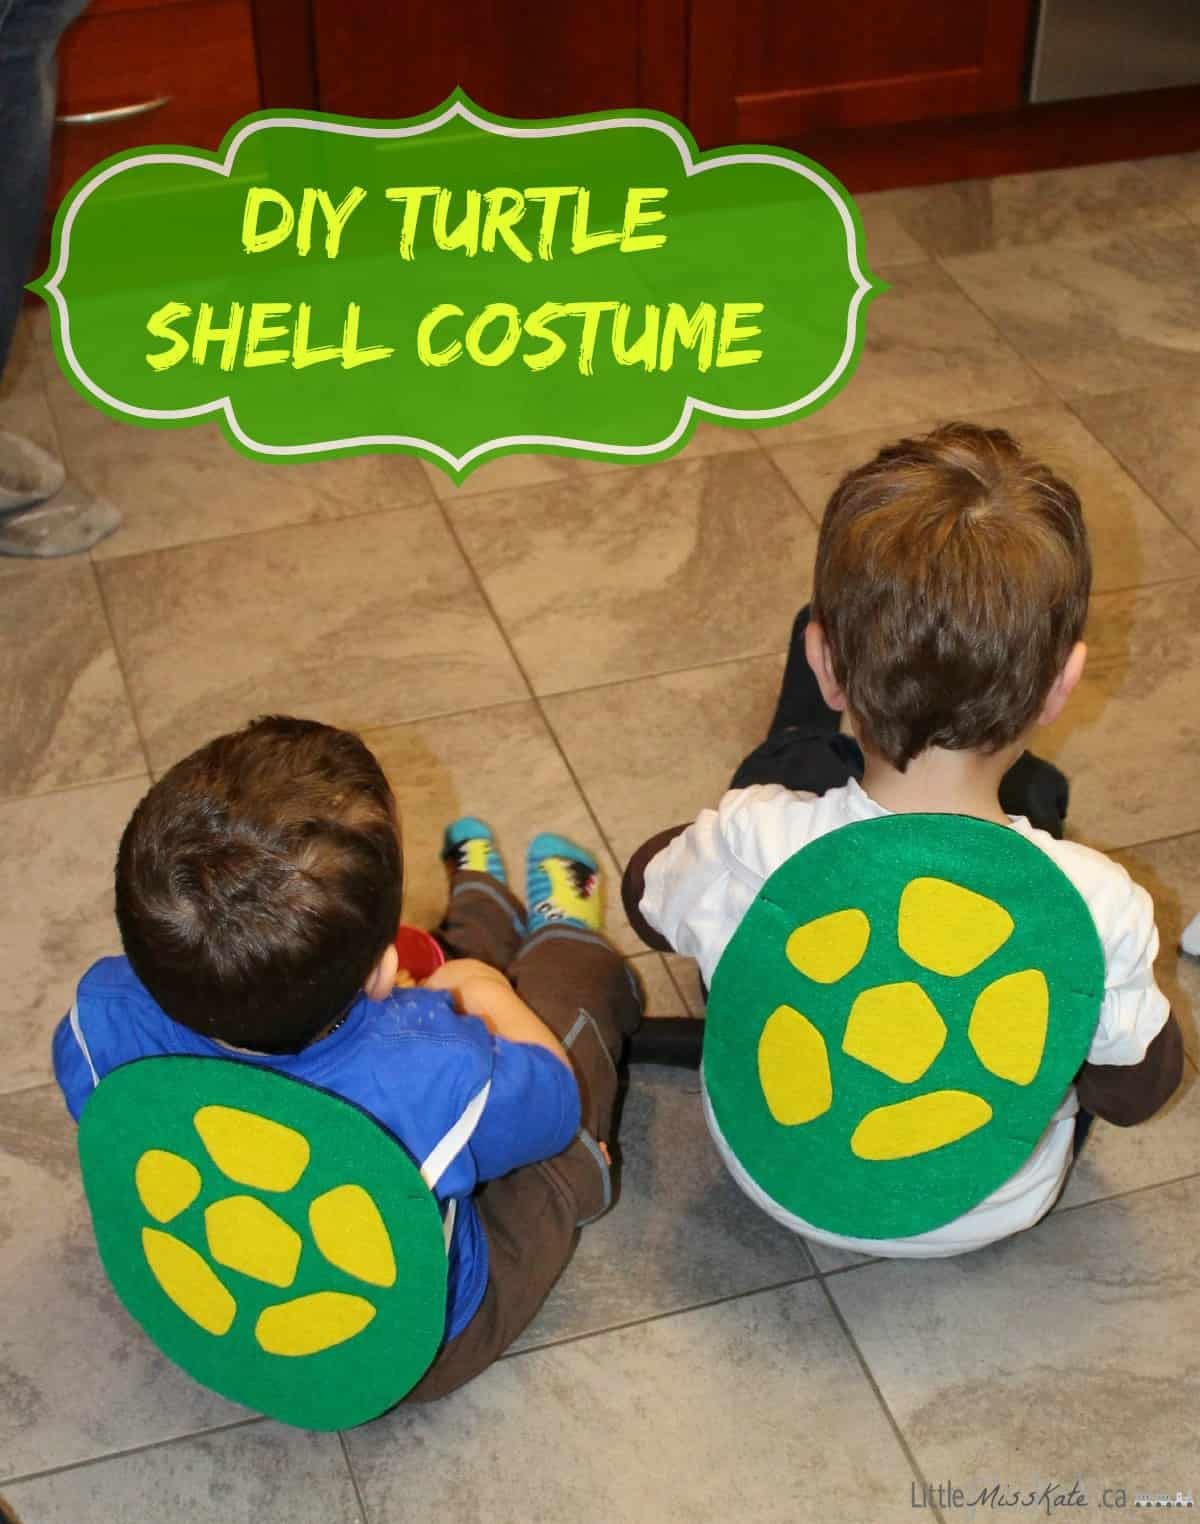 Diy teenage mutant ninja turtle shell costume with pattern little diy teenage mutant ninja turtle shell costume craft via littlemisskate solutioingenieria Gallery